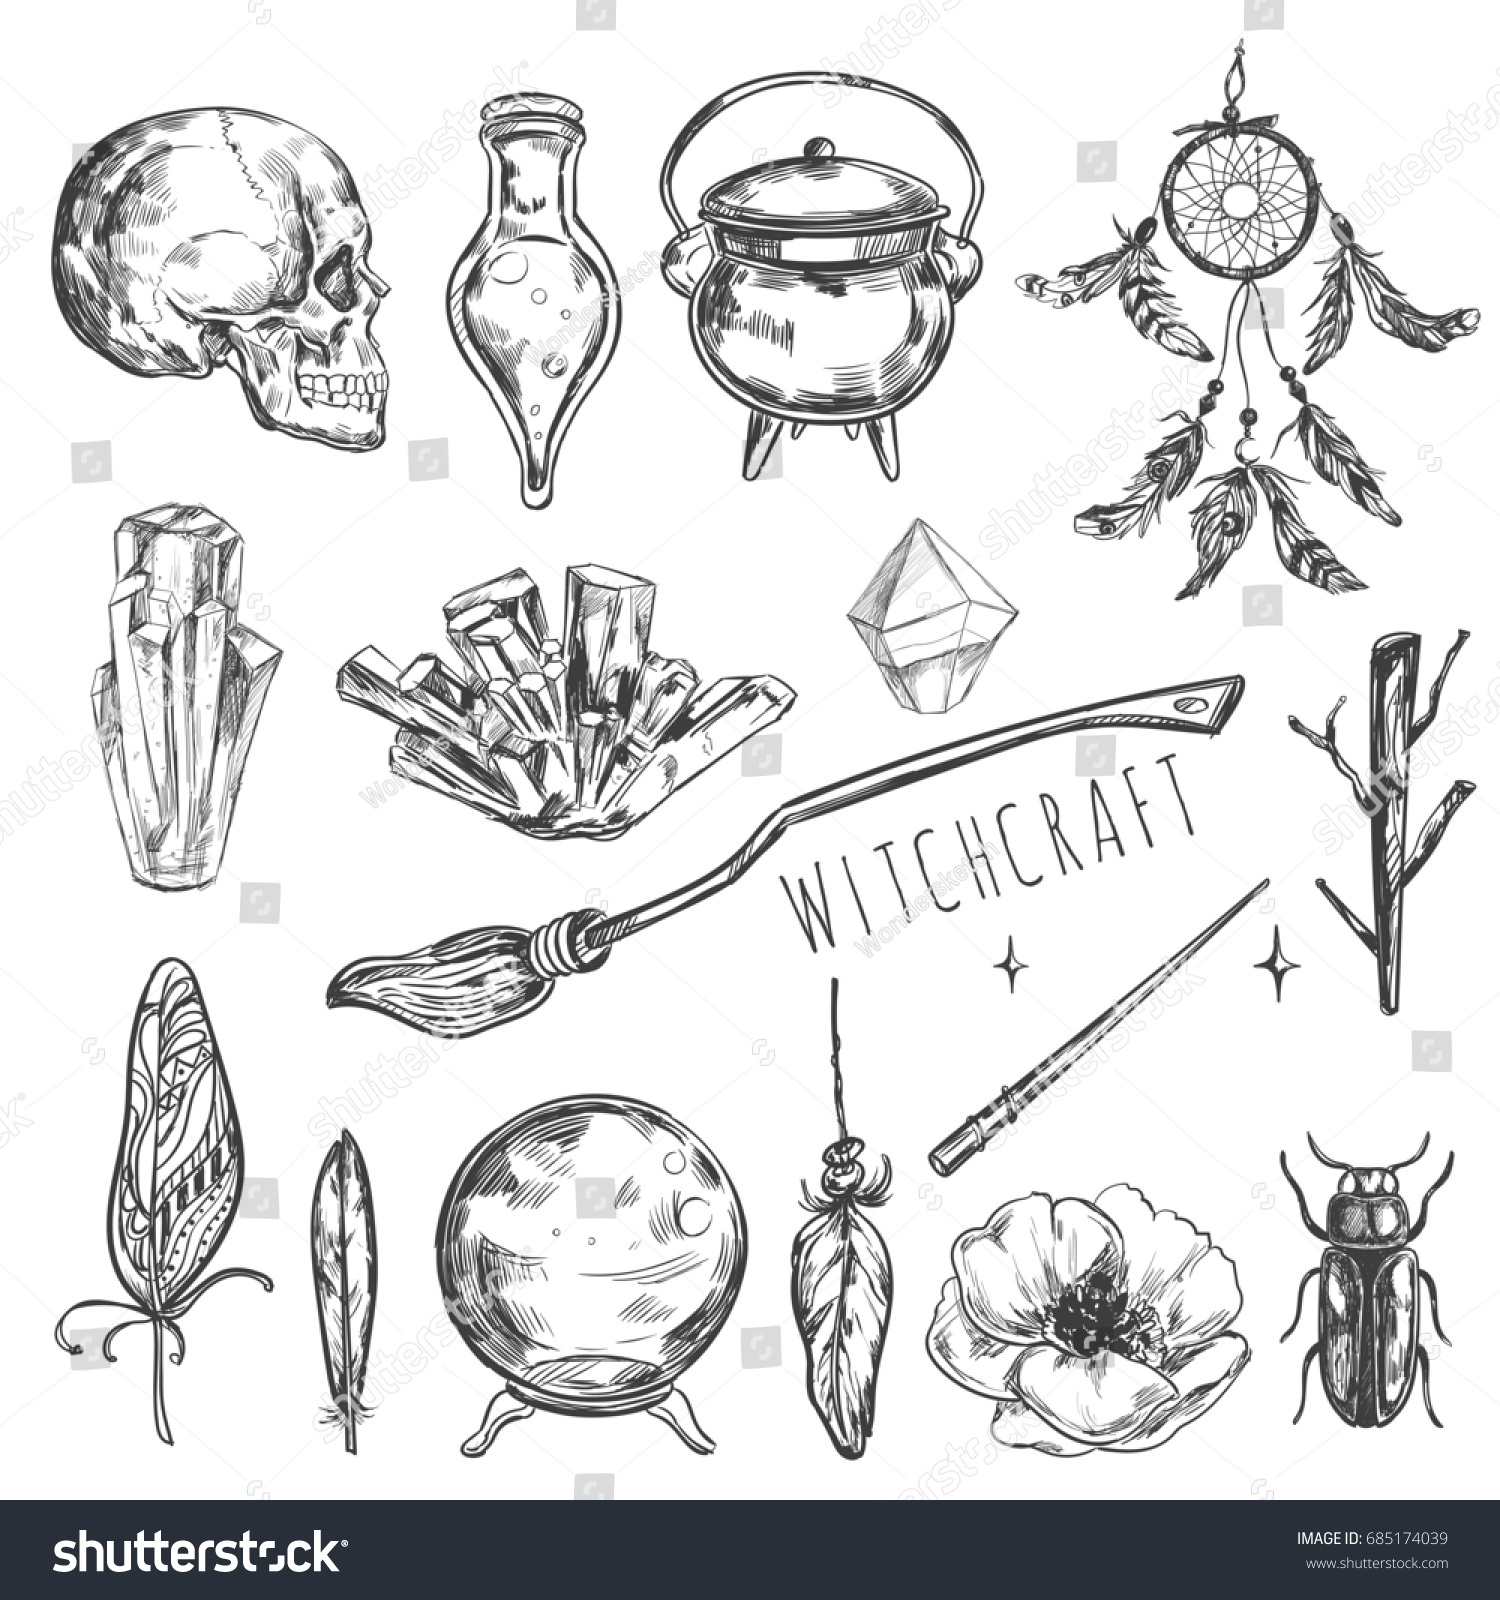 Hand drawn magic halloween set illustration stock illustration illustration wizardry witchcraft symbols isolated icons collection cartoon sorcery buycottarizona